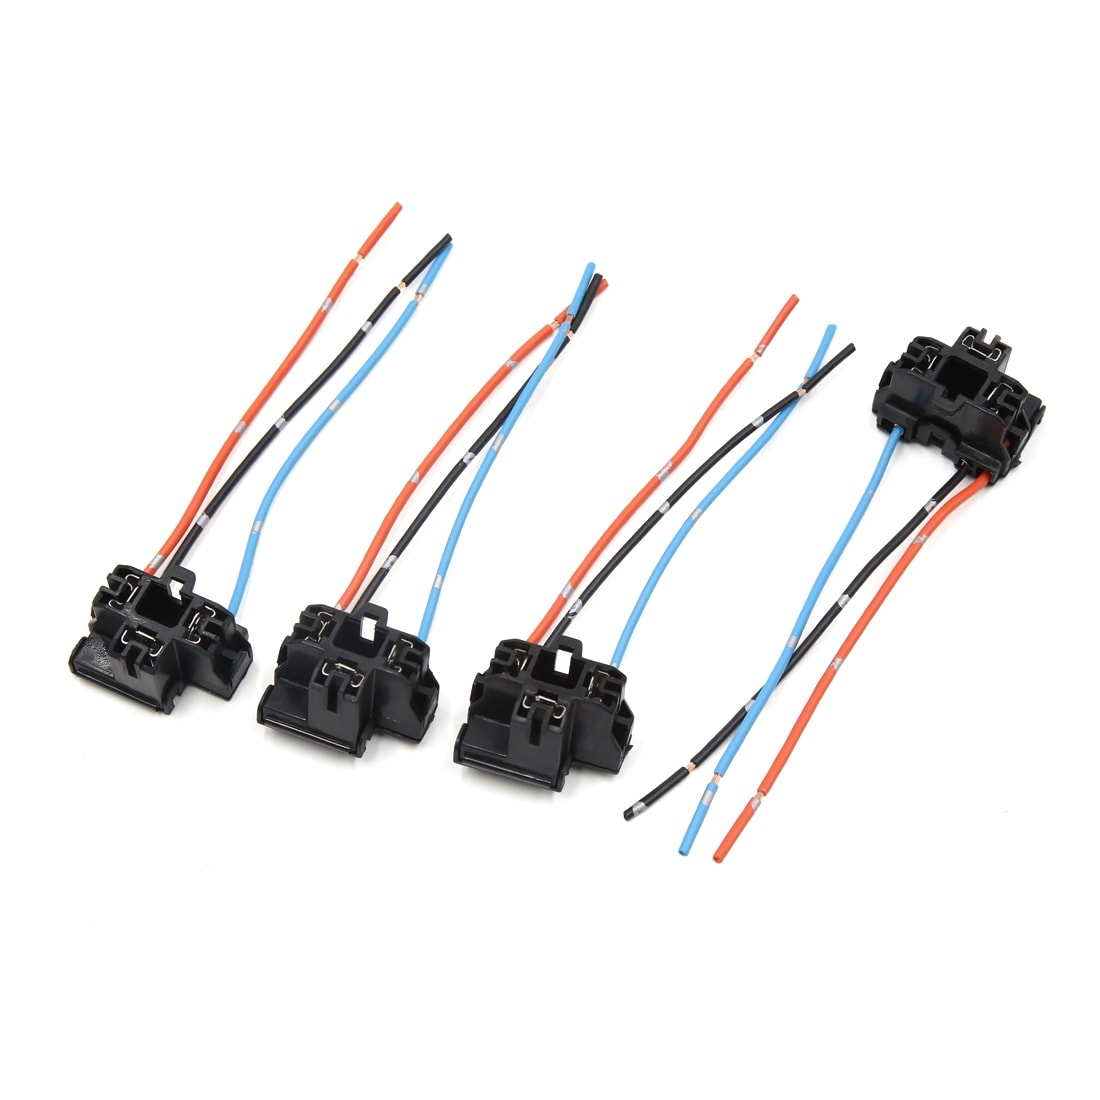 Shop 2 Pcs H4 Plastic Wire Wiring Car Head Light Bulb Harness Socket New Headlight Male Connector Plug Free Shipping On Orders Over 45 17579461